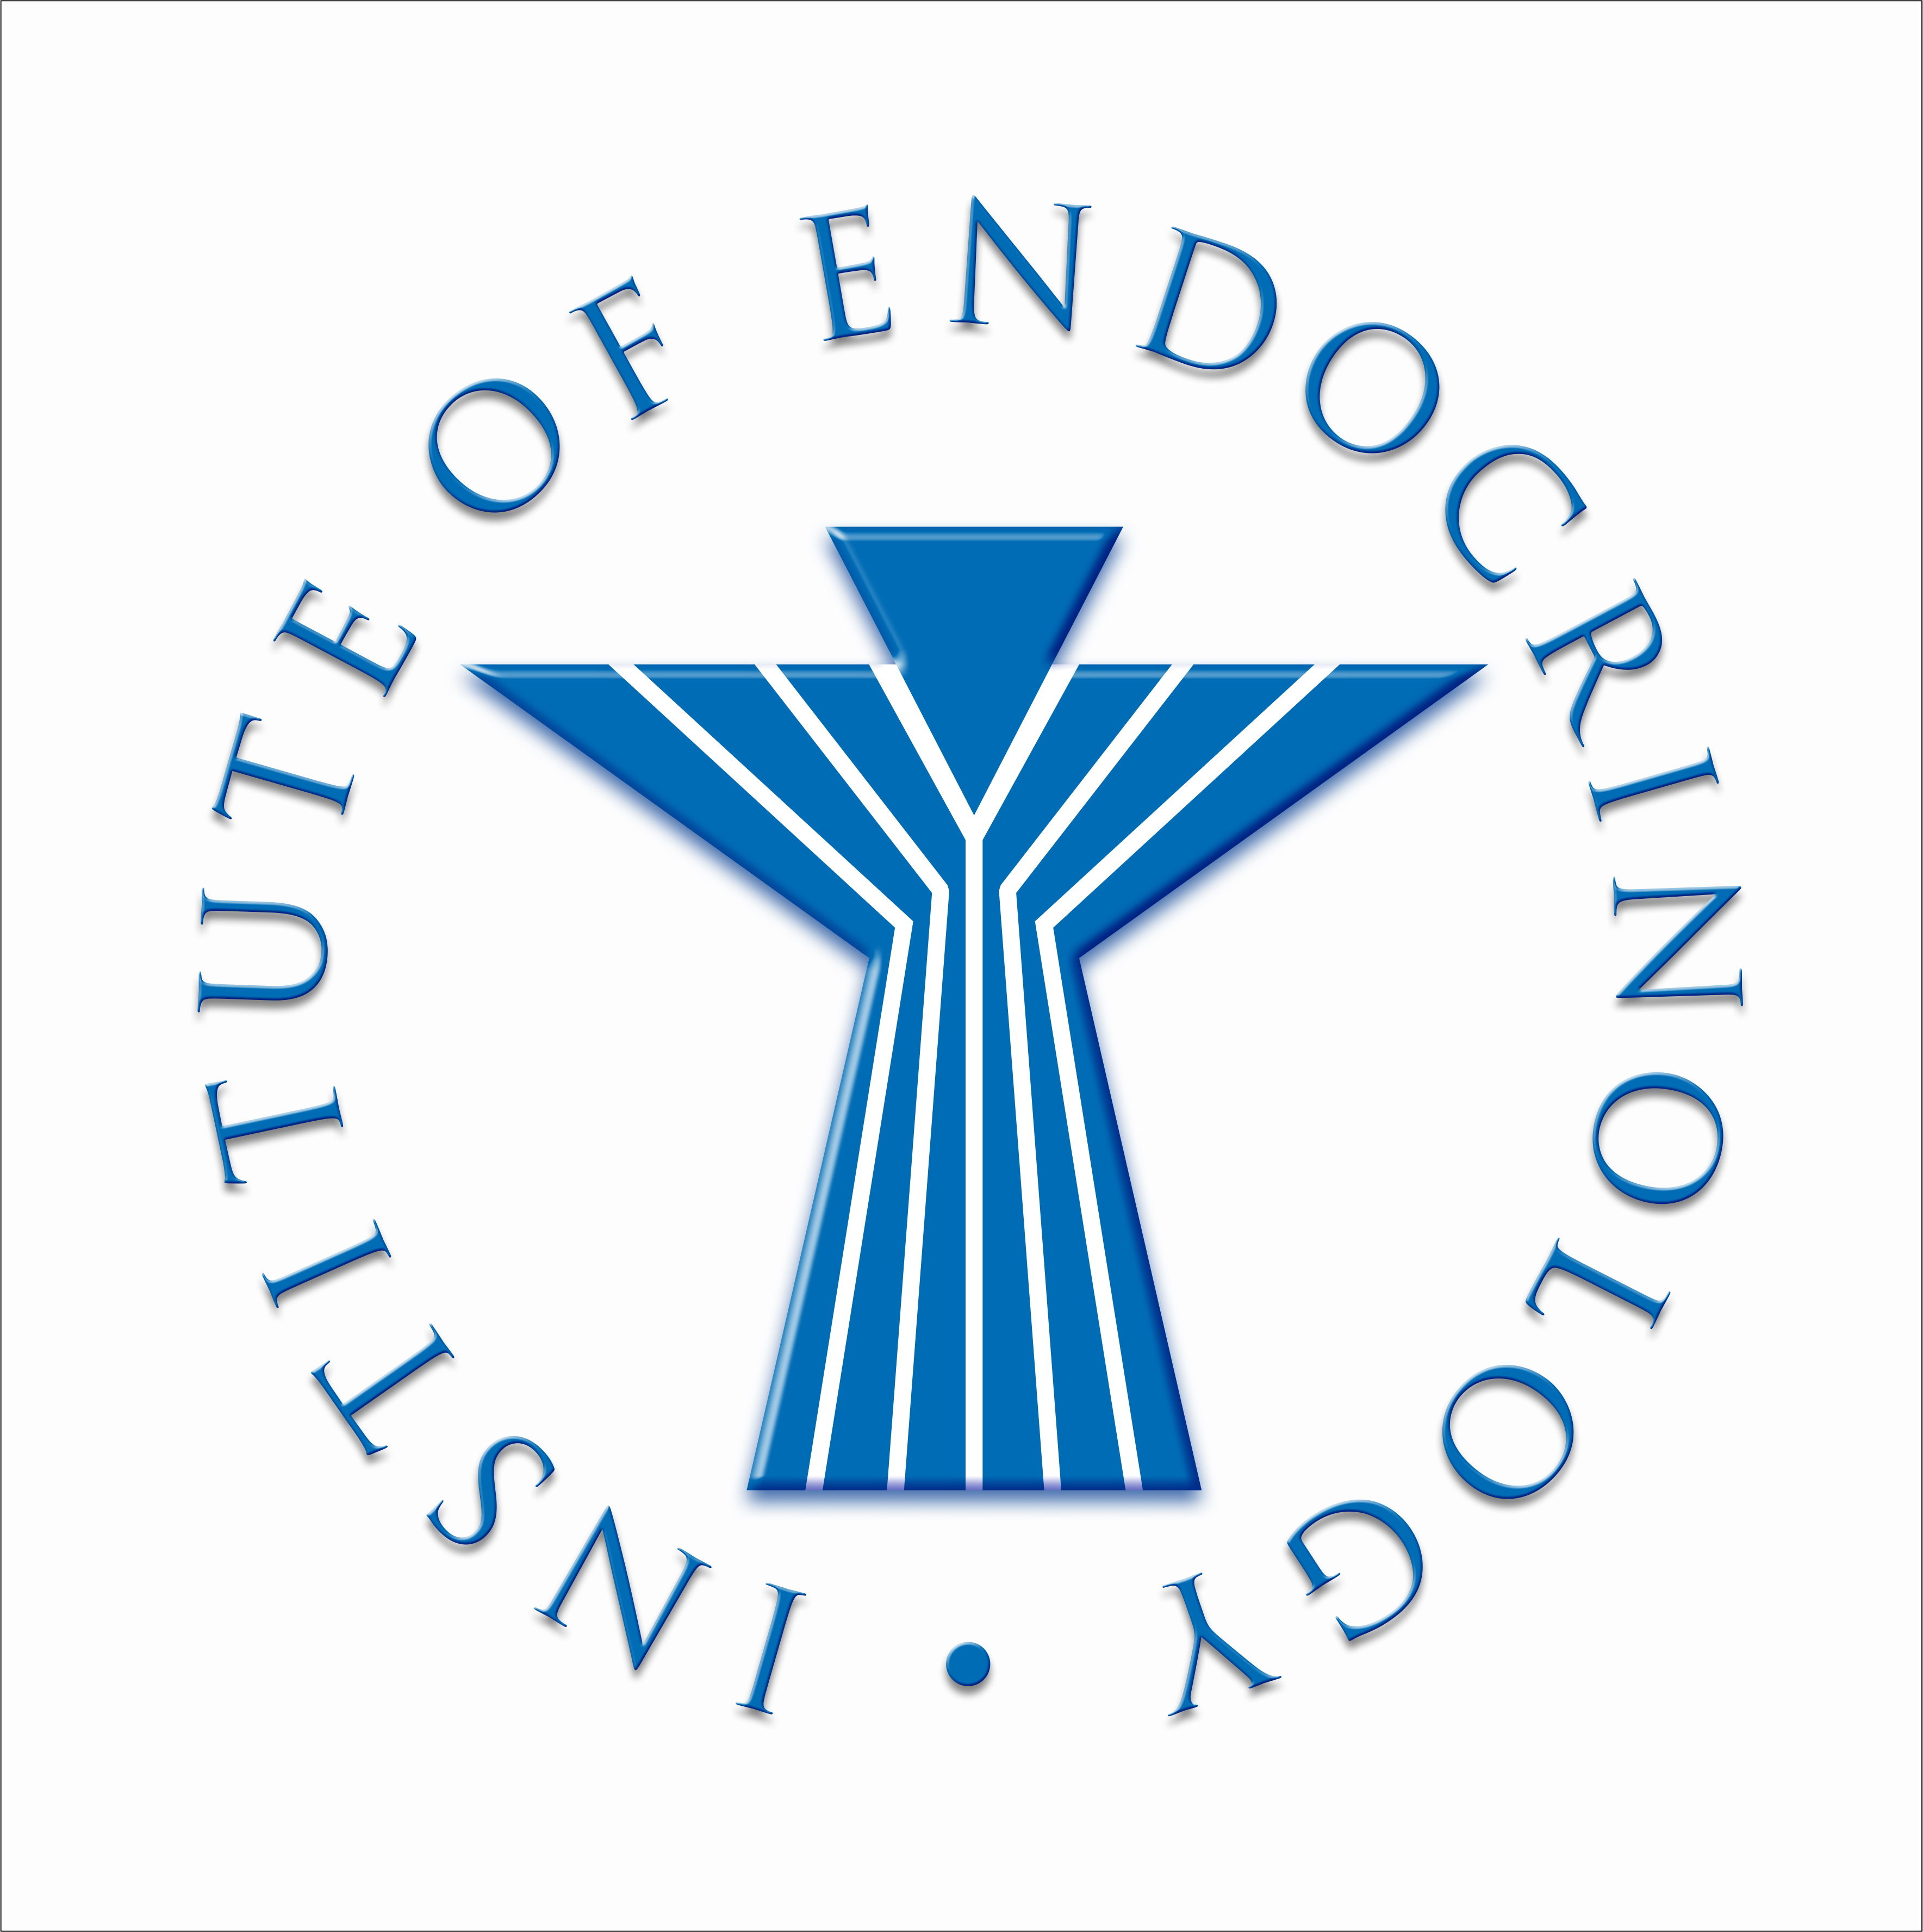 Institute of Endocrinology